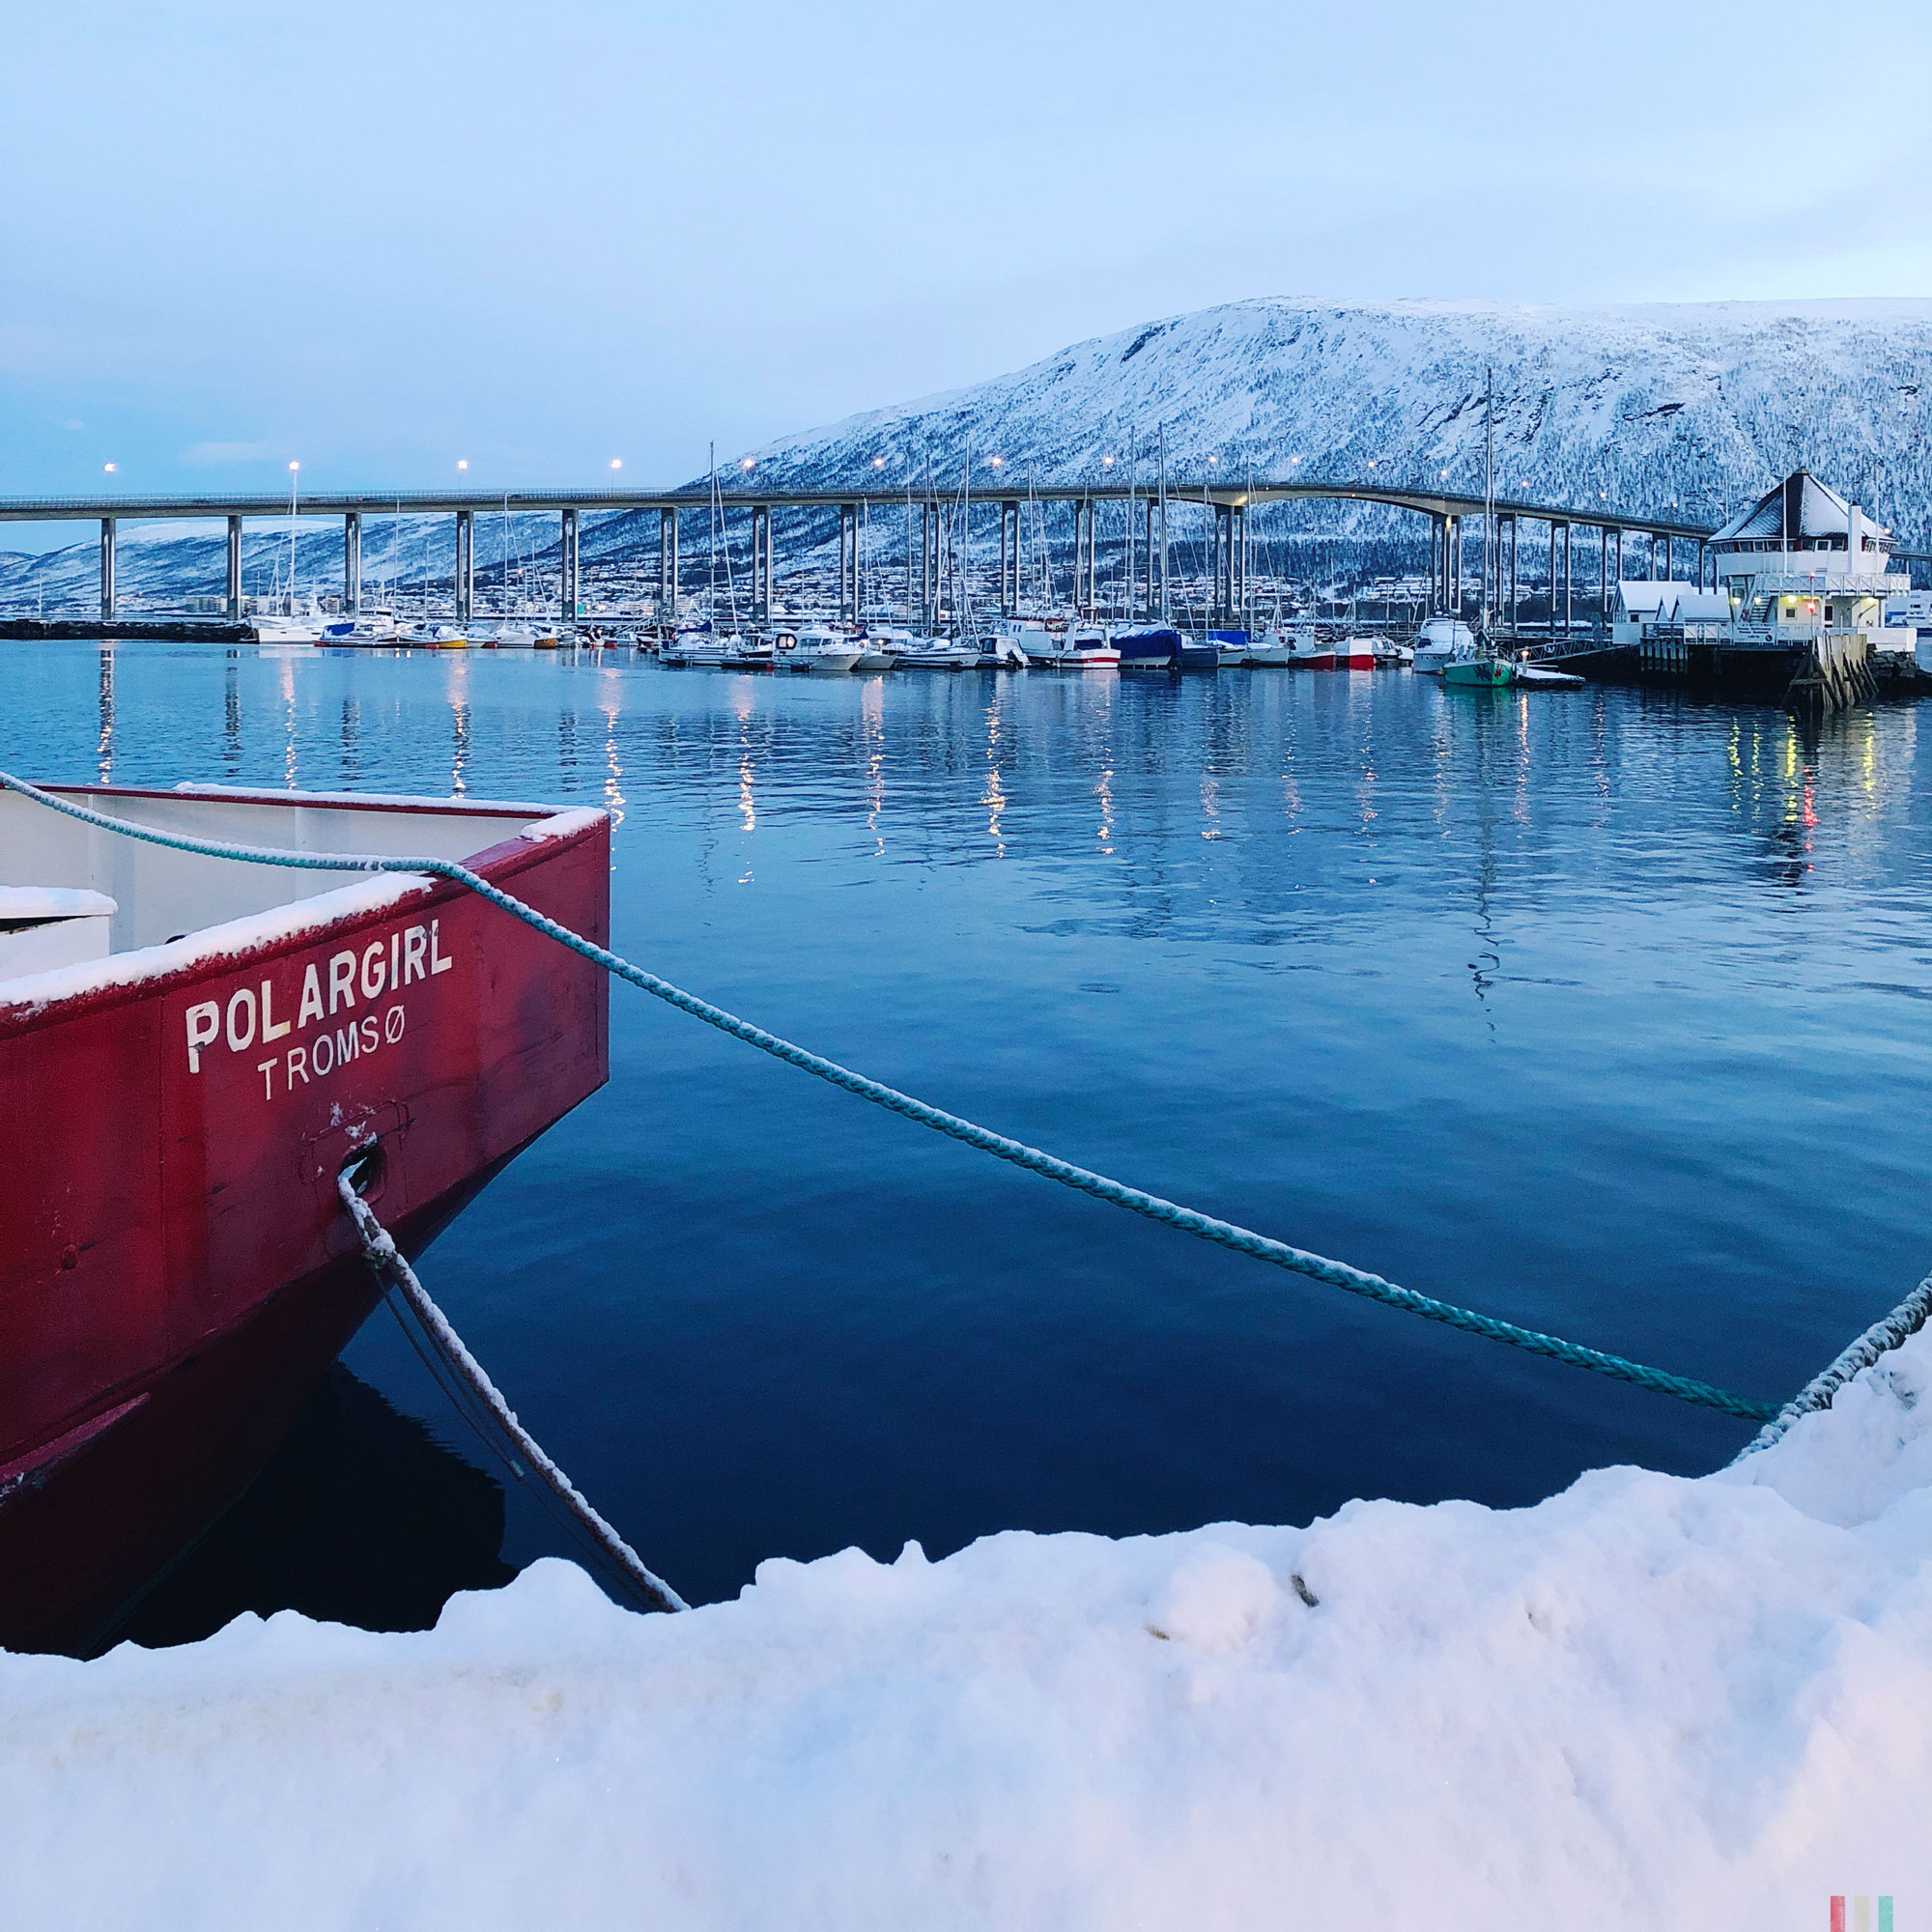 norwegen-tromso-hafen-polargirl.jpg